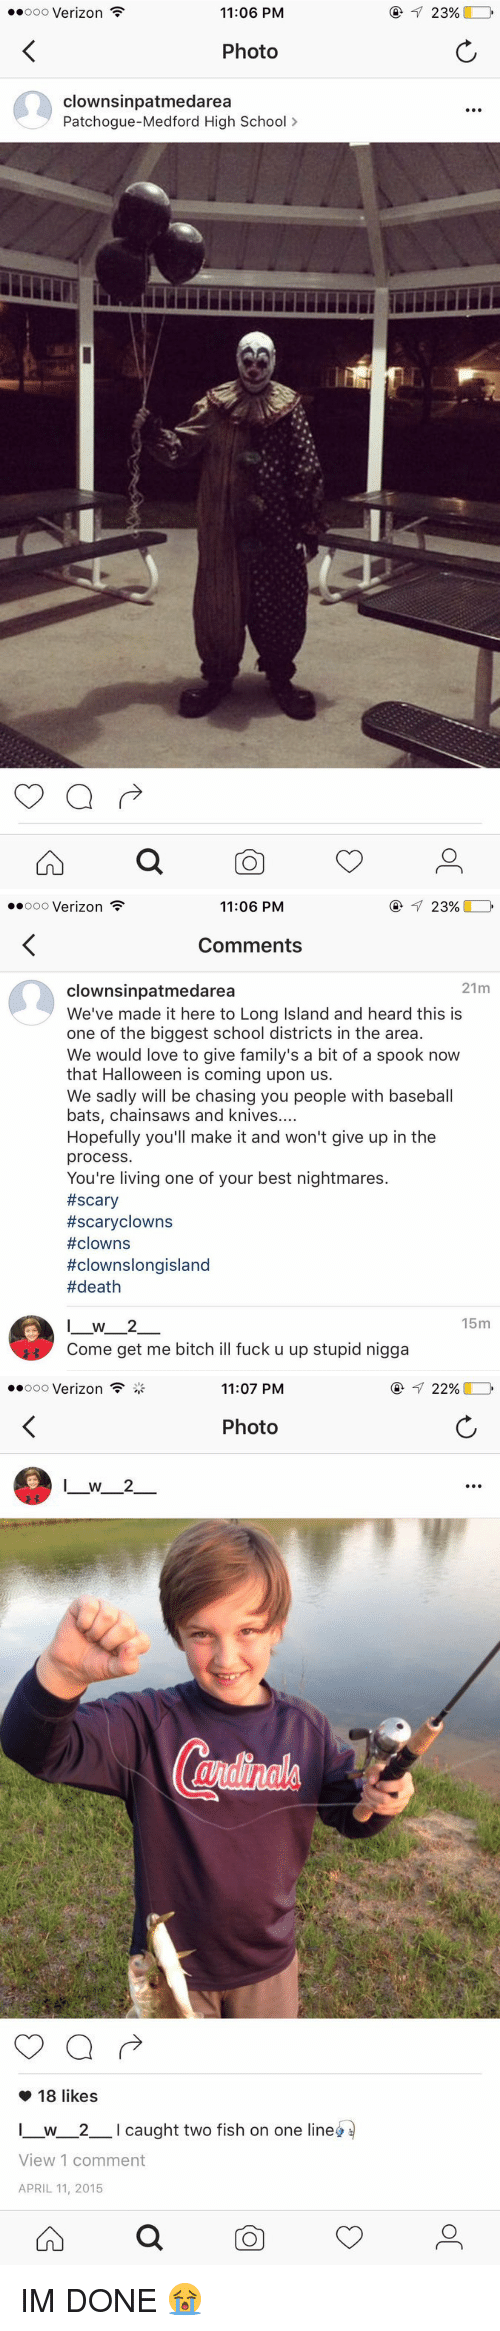 Baseball, Halloween, and Memes: ooooo Verizon  11:06 PM  Photo  clownsinpatmedarea  Patchogue-Medford High School  23%   Ooo Verizon  11:06 PM  23%  Comments  21m  clownsinpatmedarea  We've made it here to Long Island and heard this is  one of the biggest school districts in the area.  We would love to give family's a bit of a spook now  that Halloween is coming upon us.  We sadly will be chasing you people with baseball  bats, chainsaws and knives  Hopefully you'll make it and won't give up in the  process.  You're living one of your best nightmares.  #scary  #scary clowns  #clowns  #clowns longisland  #death  15m  I W 2  Come get me bitch ill fuck u up stupid nigga   oooooo Verizon  11:07 PM  Photo  18 likes  I w 2  l caught two fish on one line  View 1 comment  APRIL 11, 2015  22% IM DONE 😭